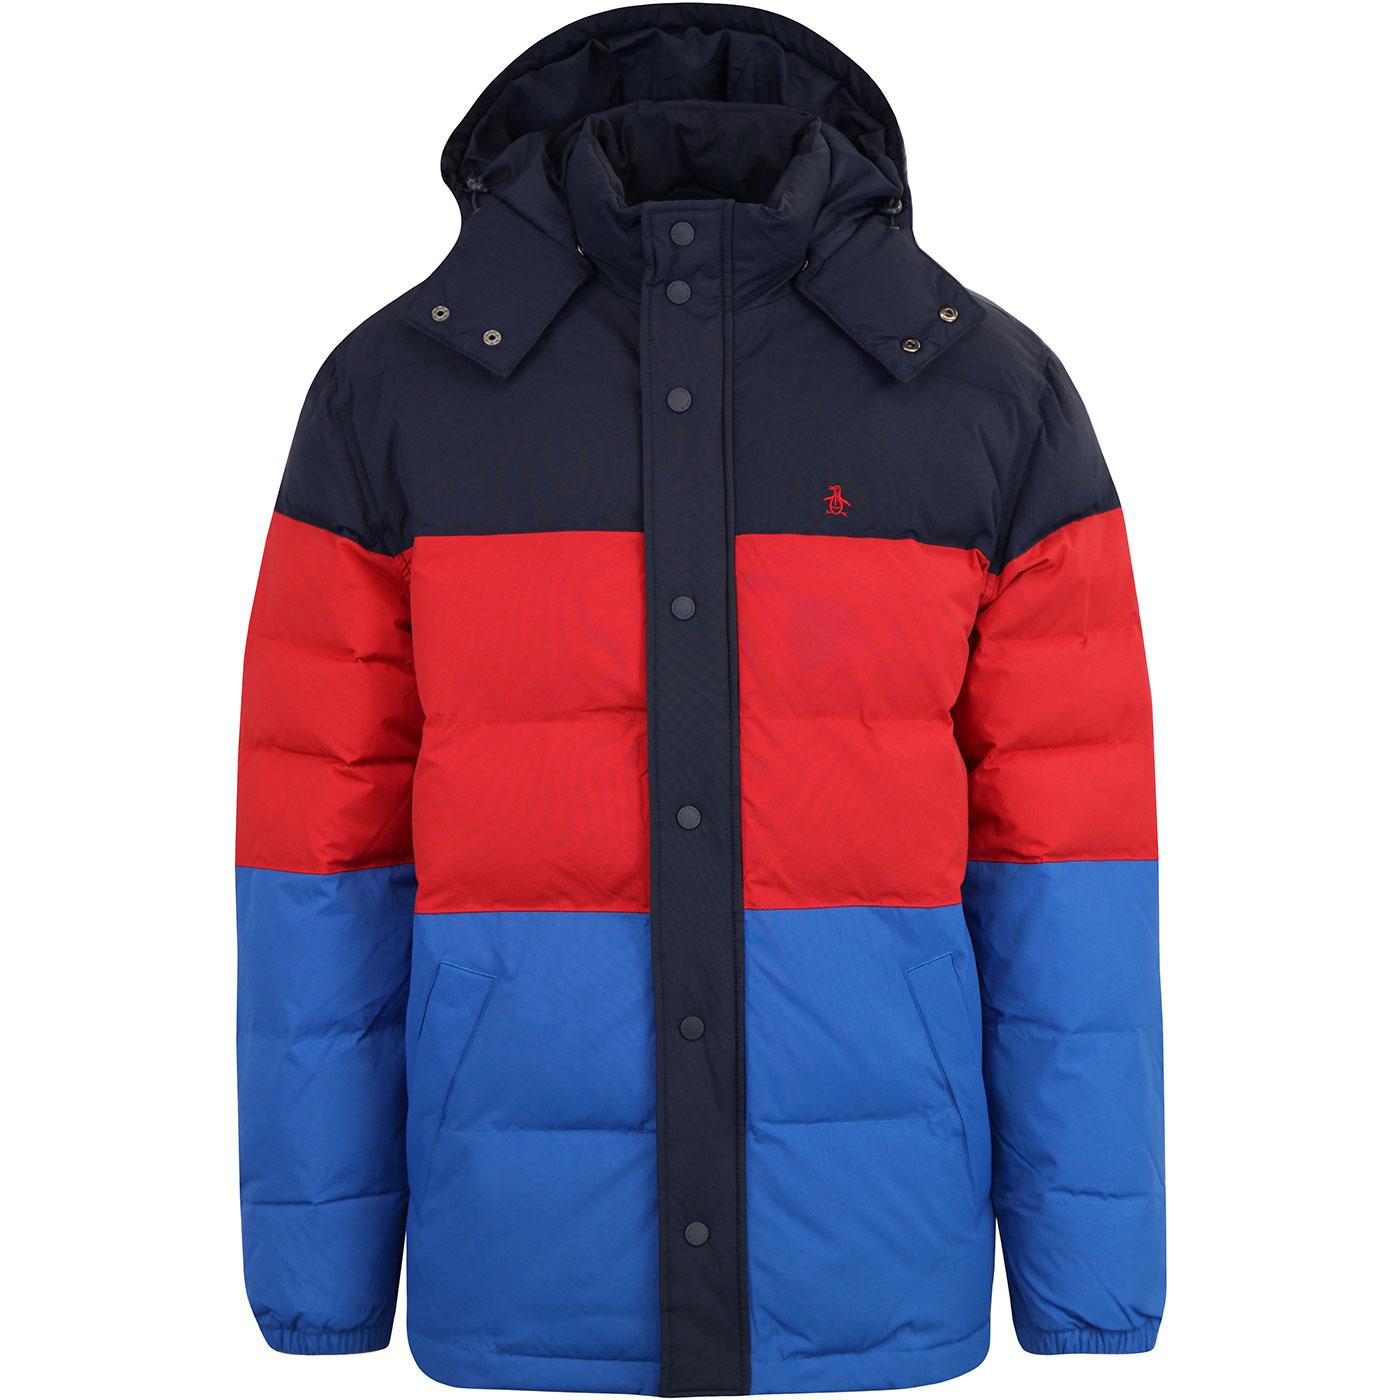 ORIGINAL PENGUIN Men's Retro 70s Ski Puffer Jacket